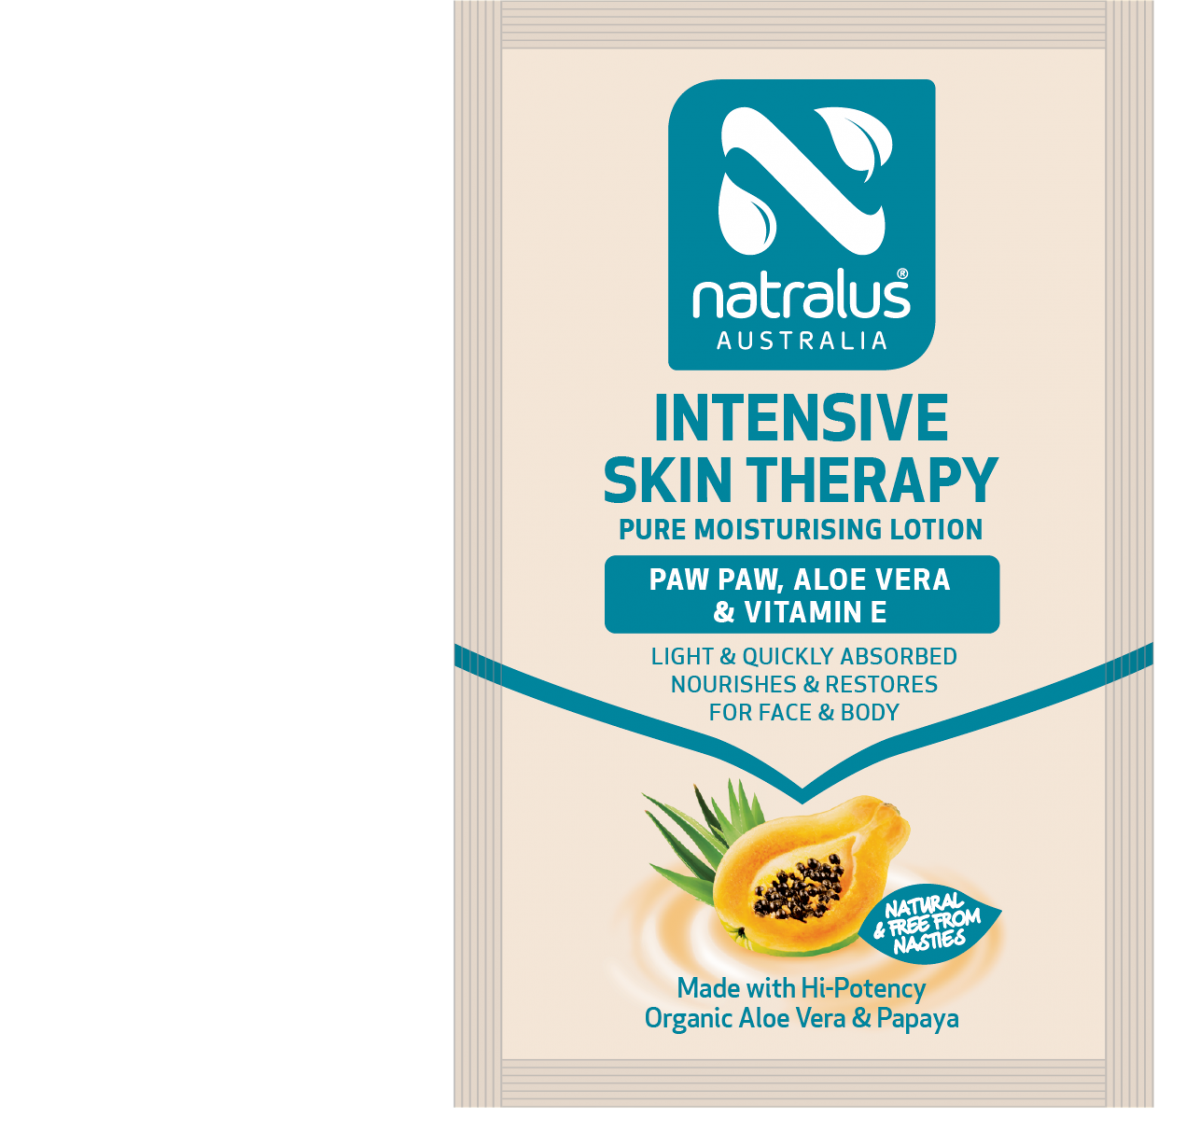 Natralus-Intensive-Skin-Therapy-Pure-Moisturising-Lotion-Sachet.png